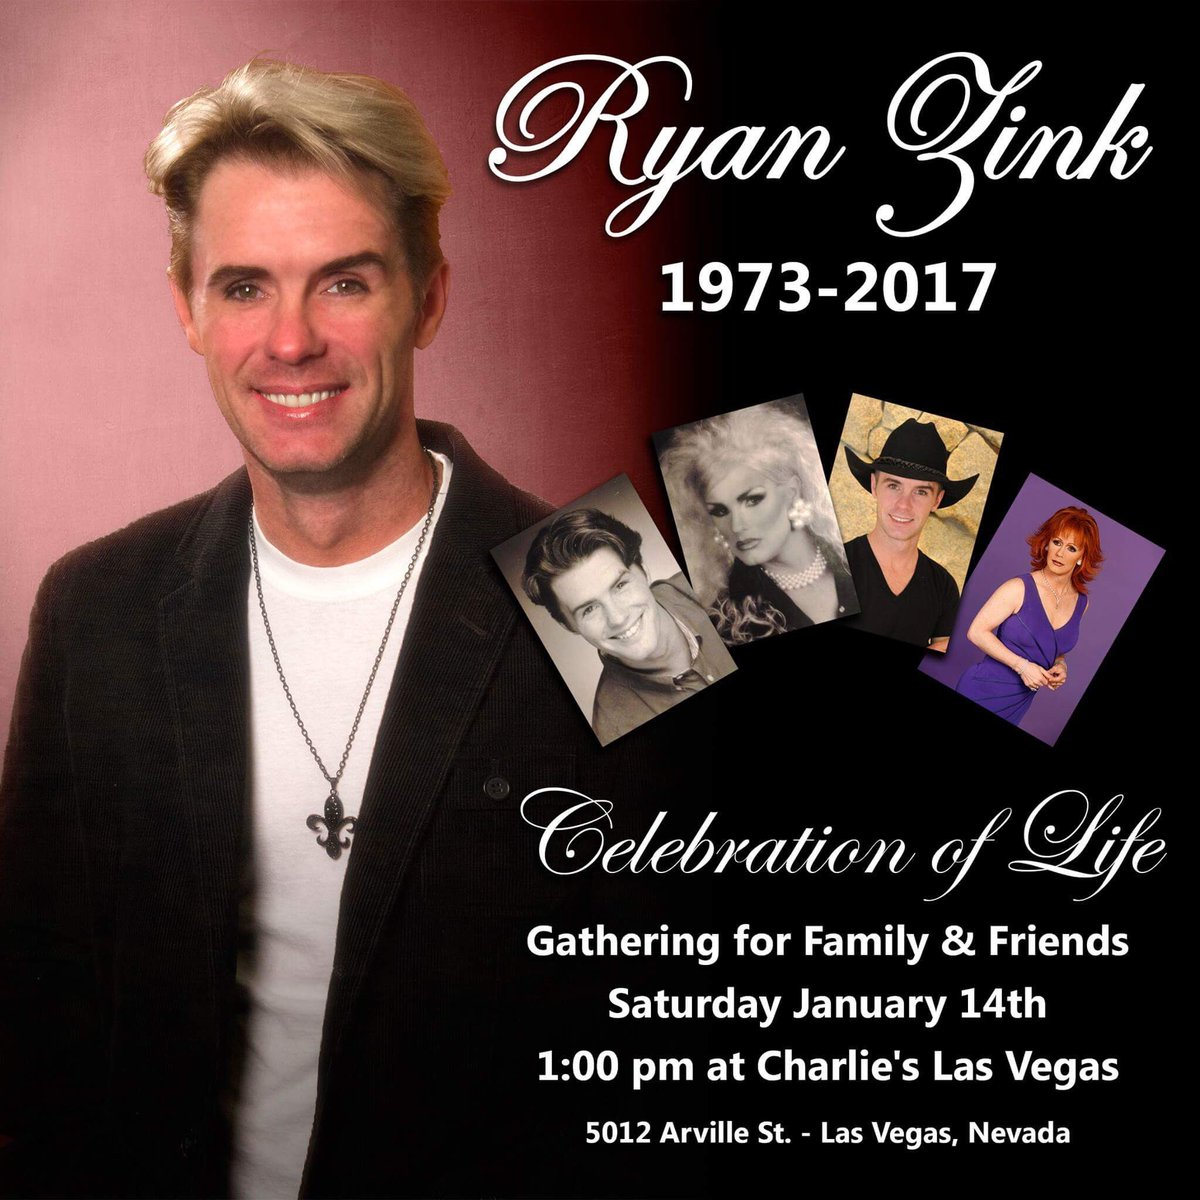 Ryan Zink Celebration of Life gathering for family & friends Saturday January 14th 1:00pm at Charlie's Las Vegas https://t.co/ASEM5gEcJF